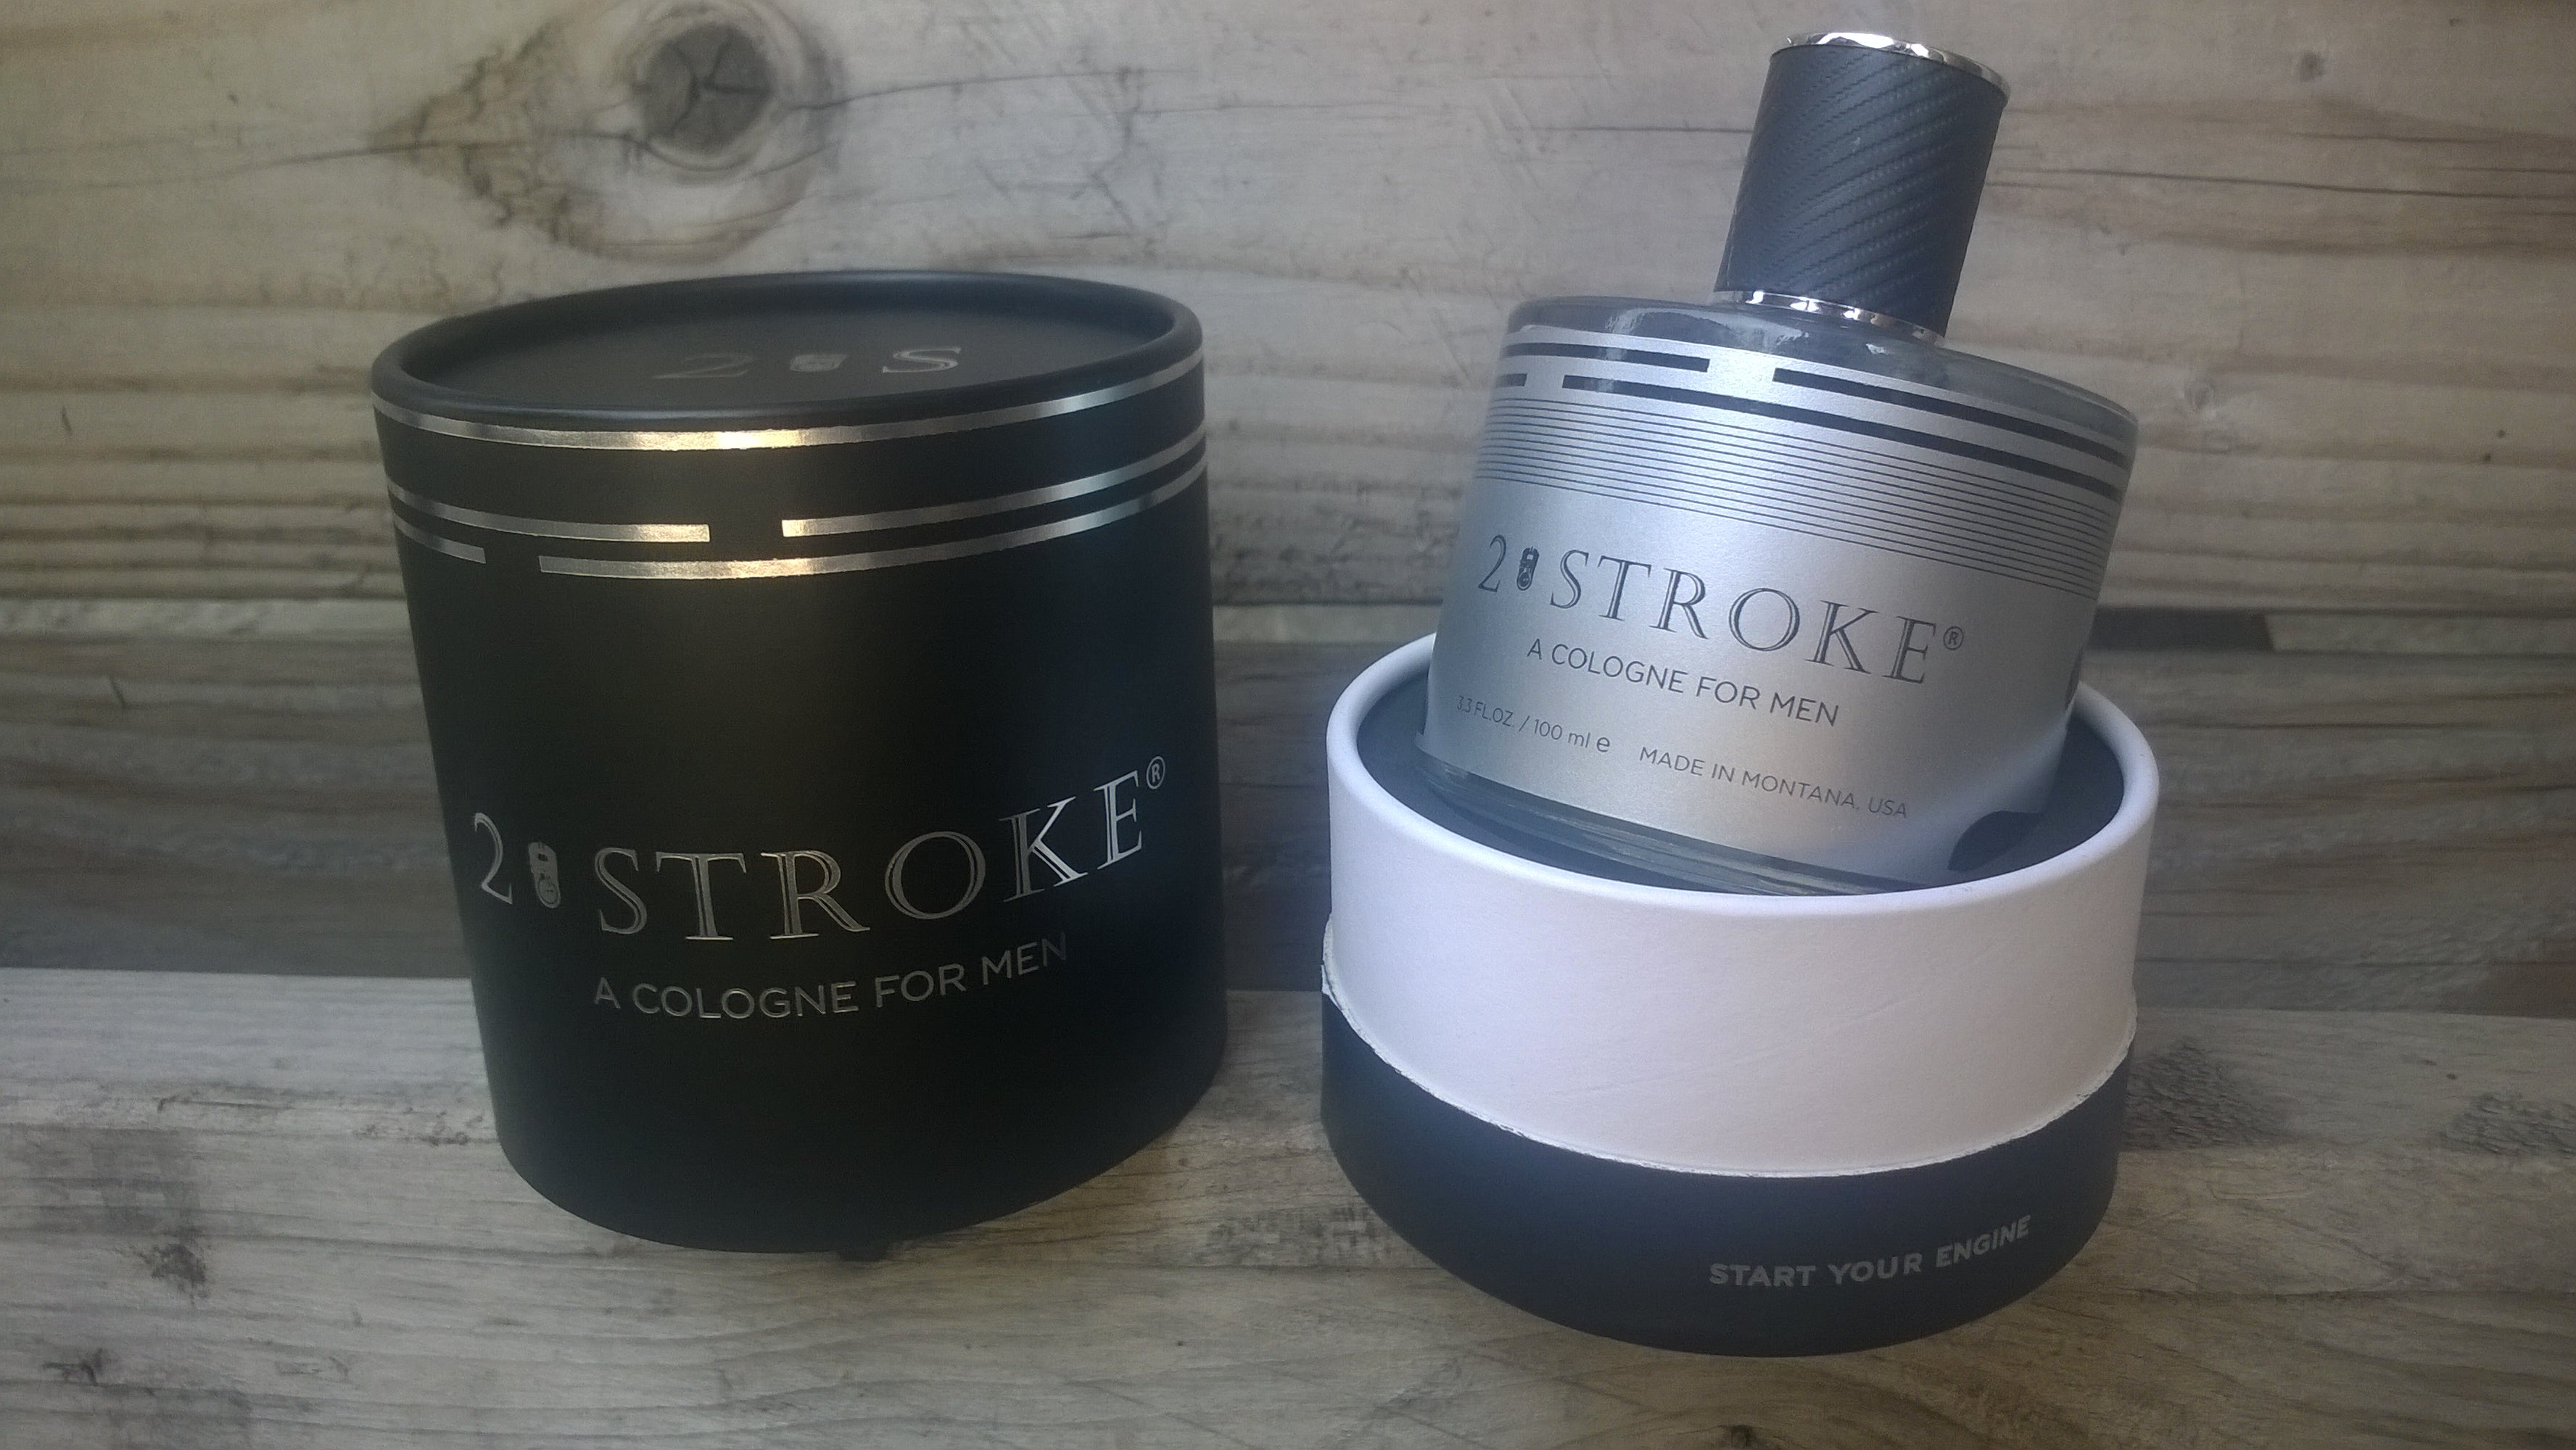 2-Stroke (International Version - No Alcohol)